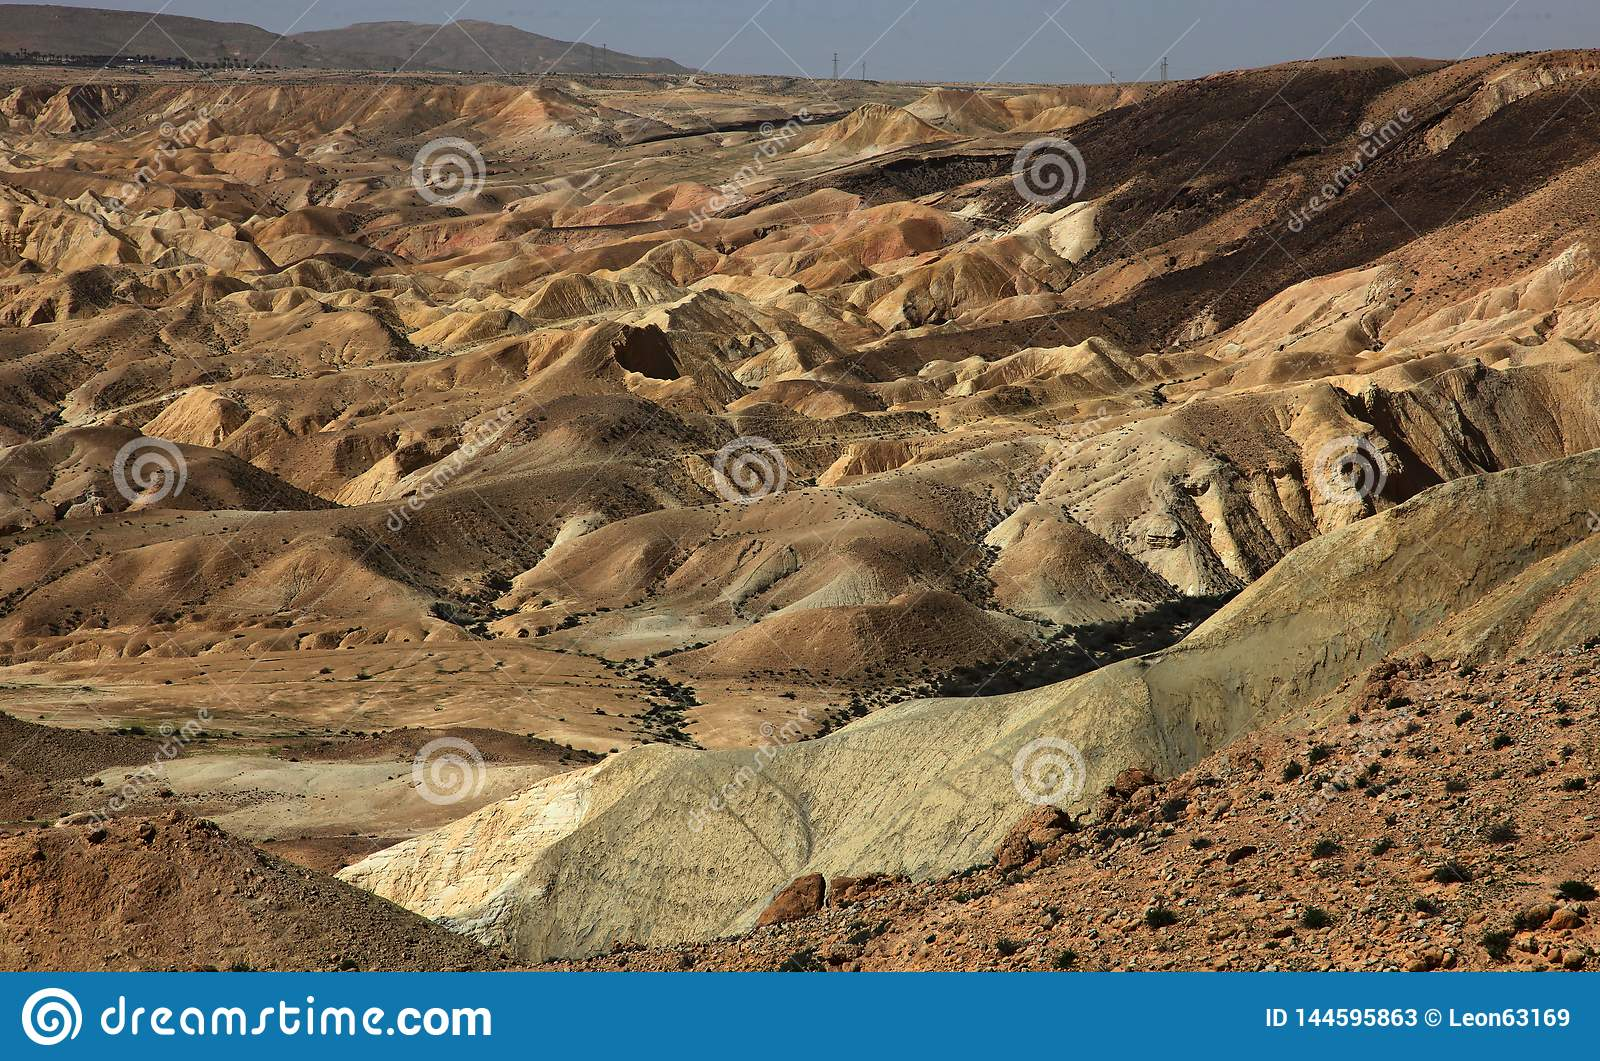 Machtesh Ramon - erosion crater in the Negev desert, the most picturesque natural landmark of Israel